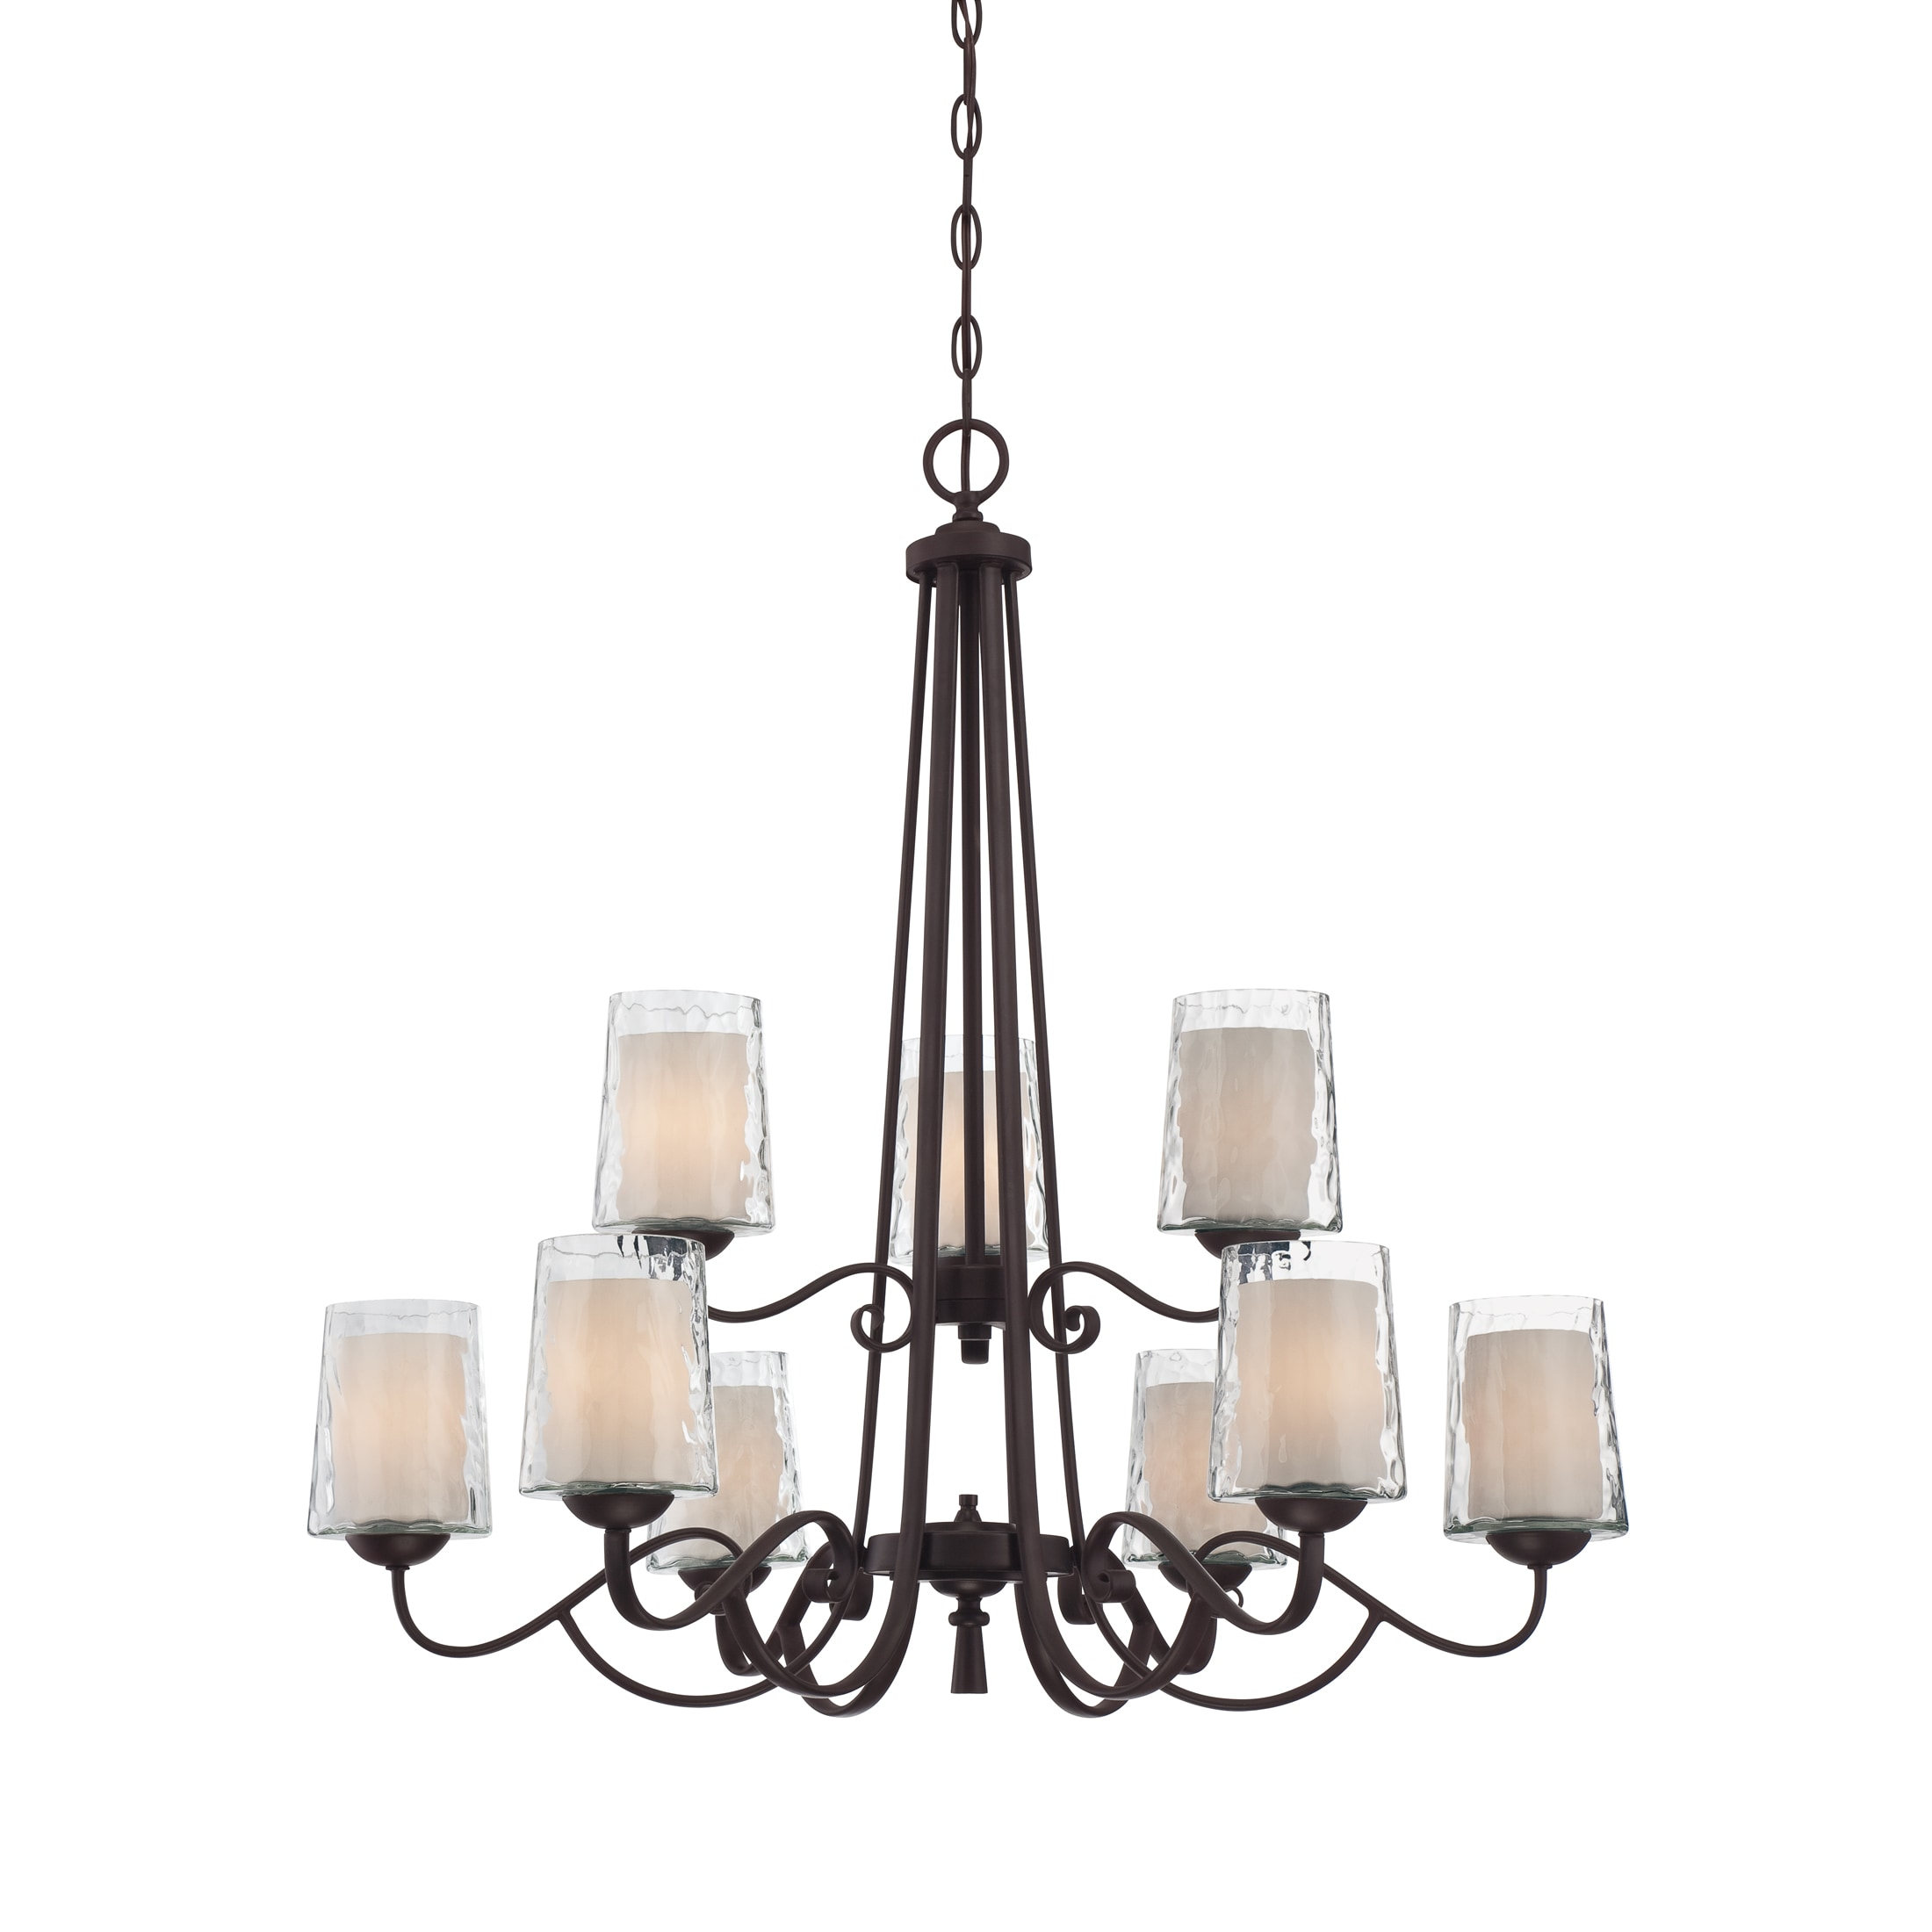 Quoizel 'Adonis' Eight-light Chandelier